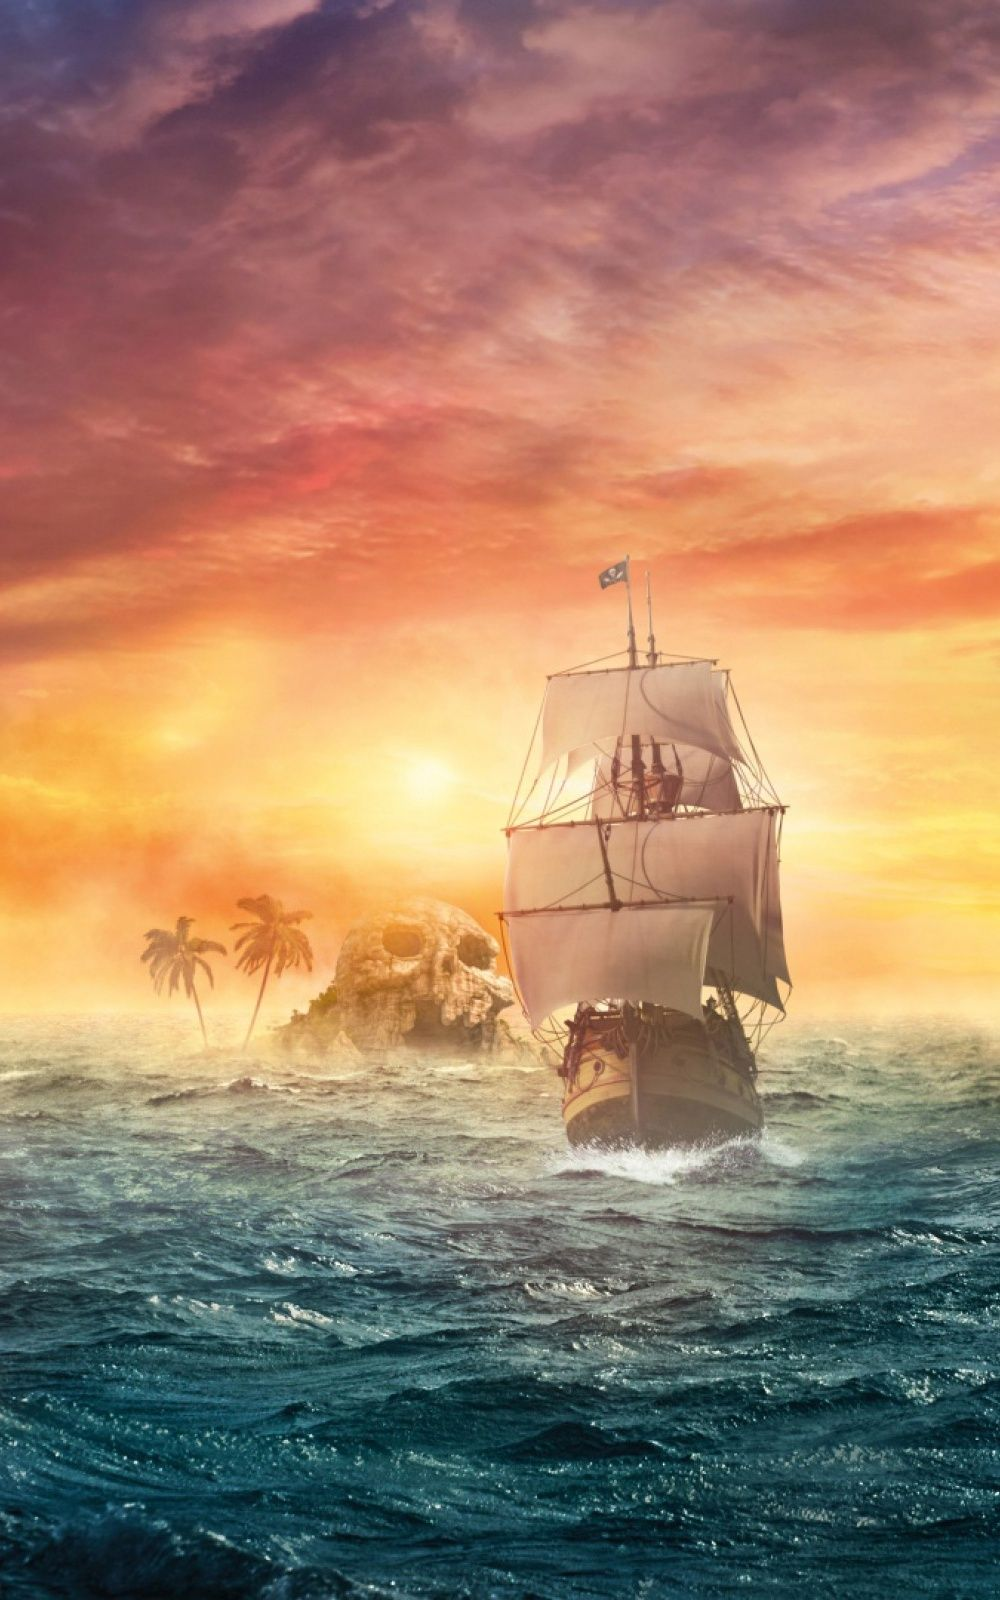 pirate ship wallpaper pirate ship wallpaper download | pirates